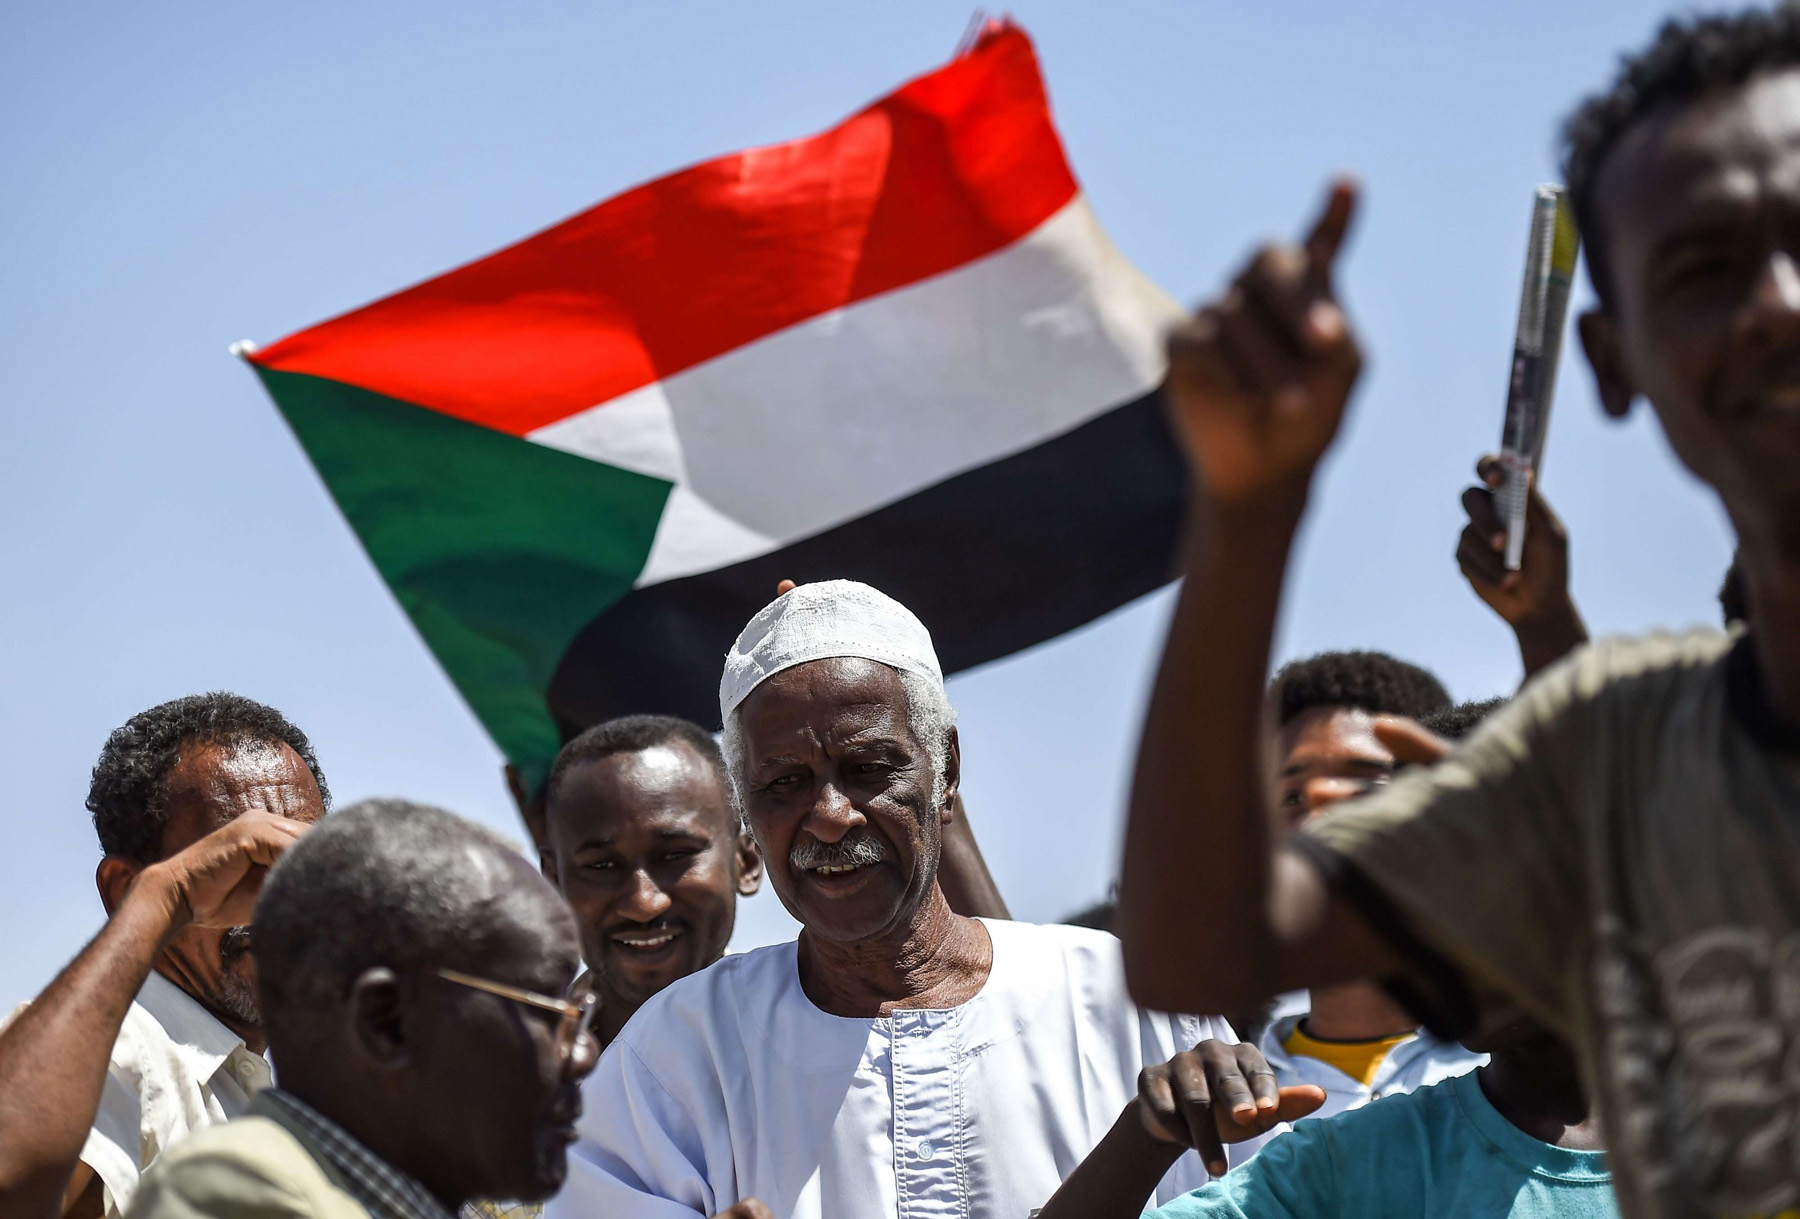 Sudanese protesters chant slogans in Khartoum, May 14, one day  after an attack by security agents loyal to ousted President Omar al-Bashir. (AFP)